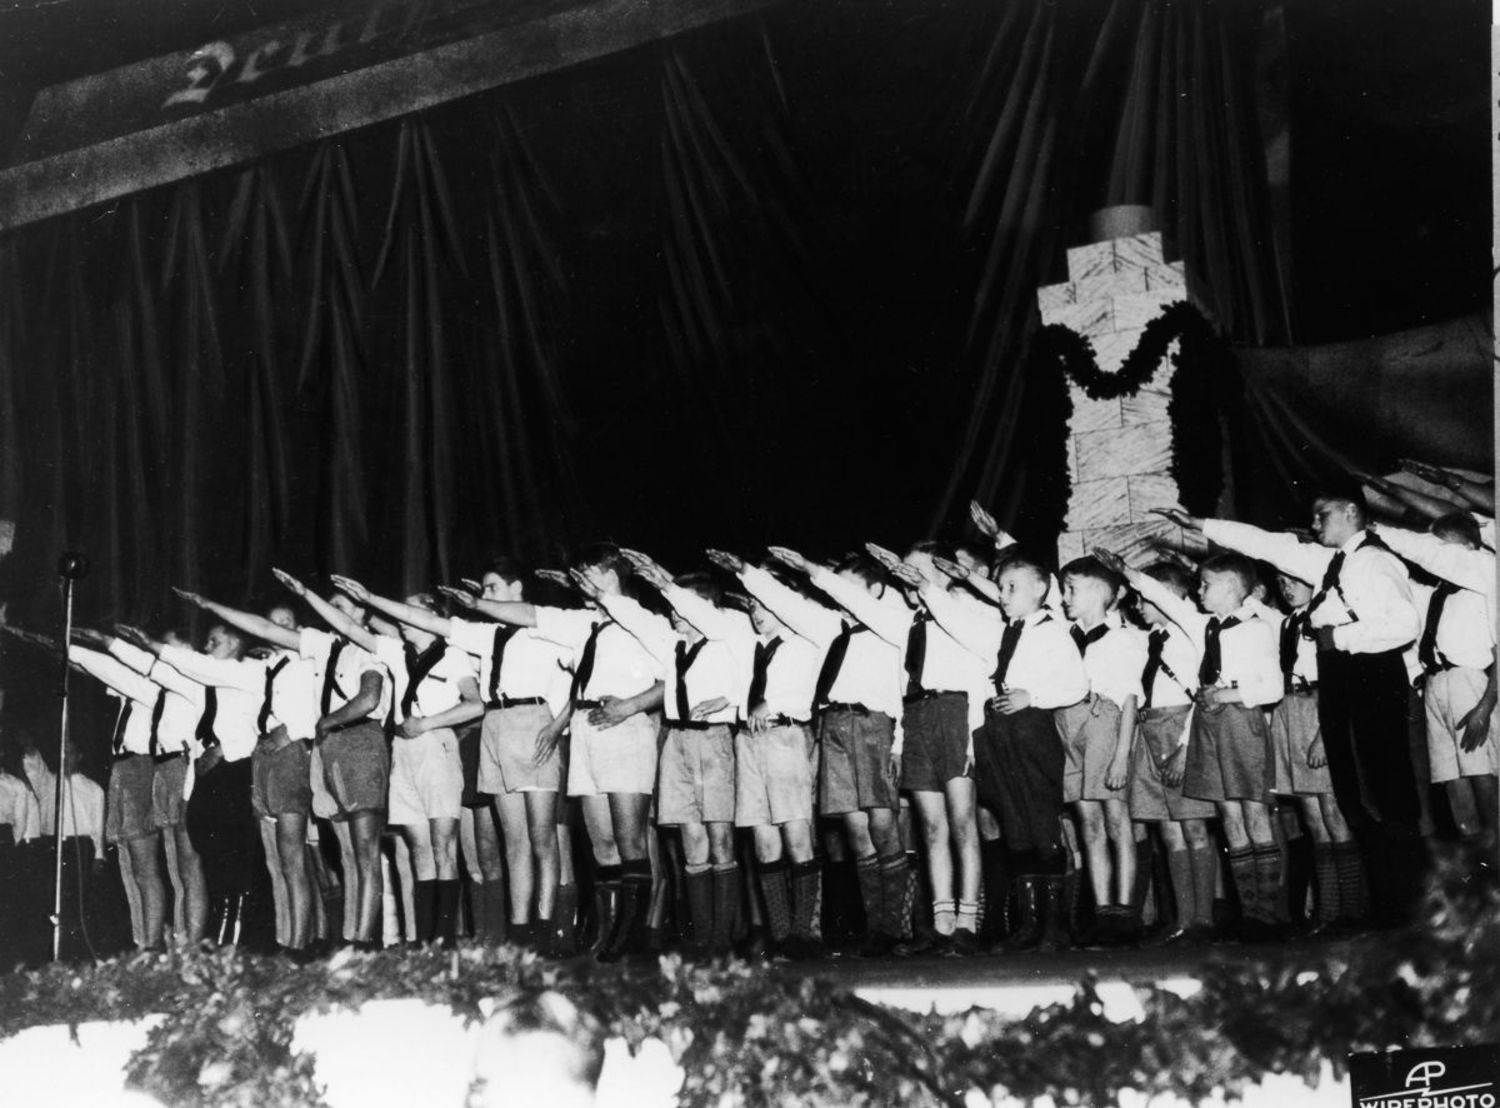 Boys in uniform salute during a pro-Nazi rally.